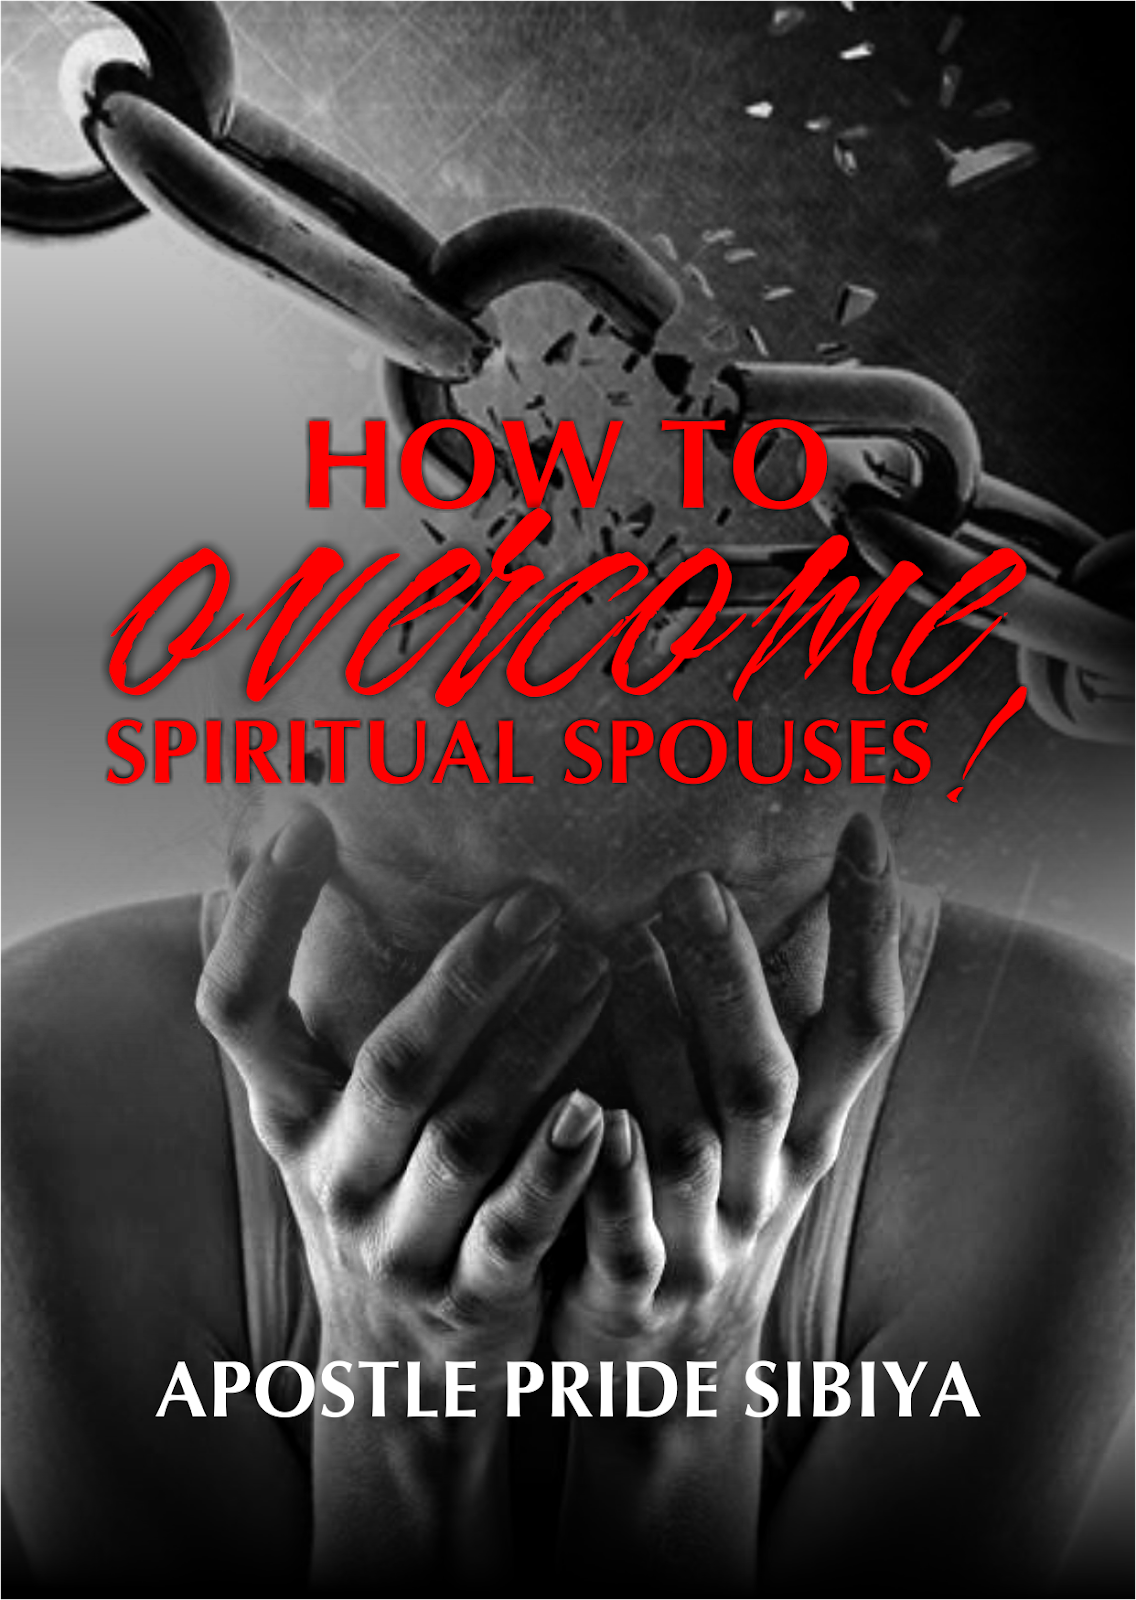 Book -- How to Overcome Spiritual Spouses ... Apostle Pride Sibiya Explores 'Spiritual Spouses' In New Book!